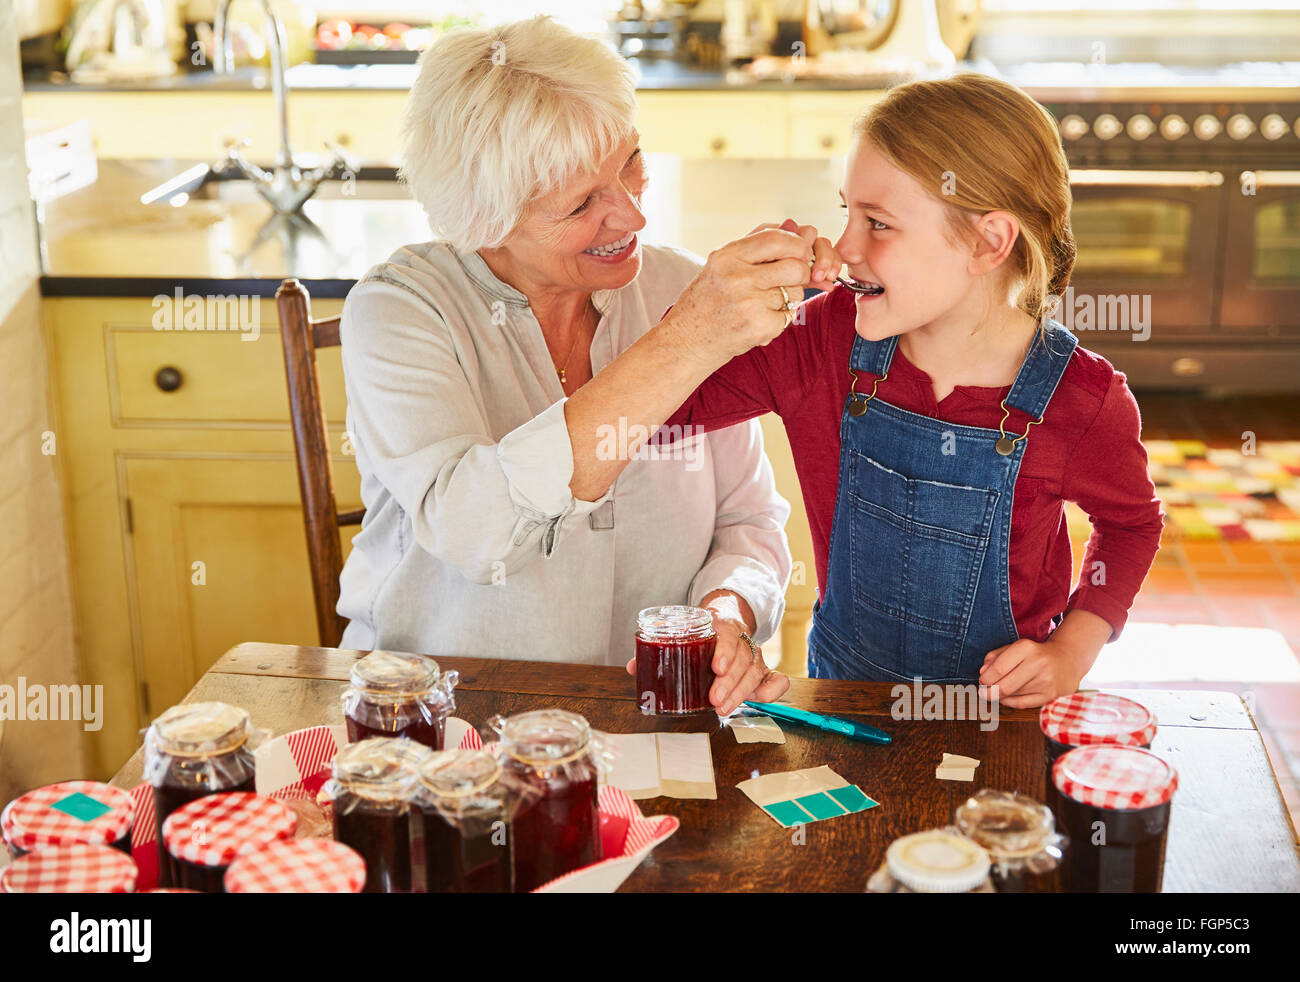 Grandmother and granddaughter canning jam in kitchen - Stock Image